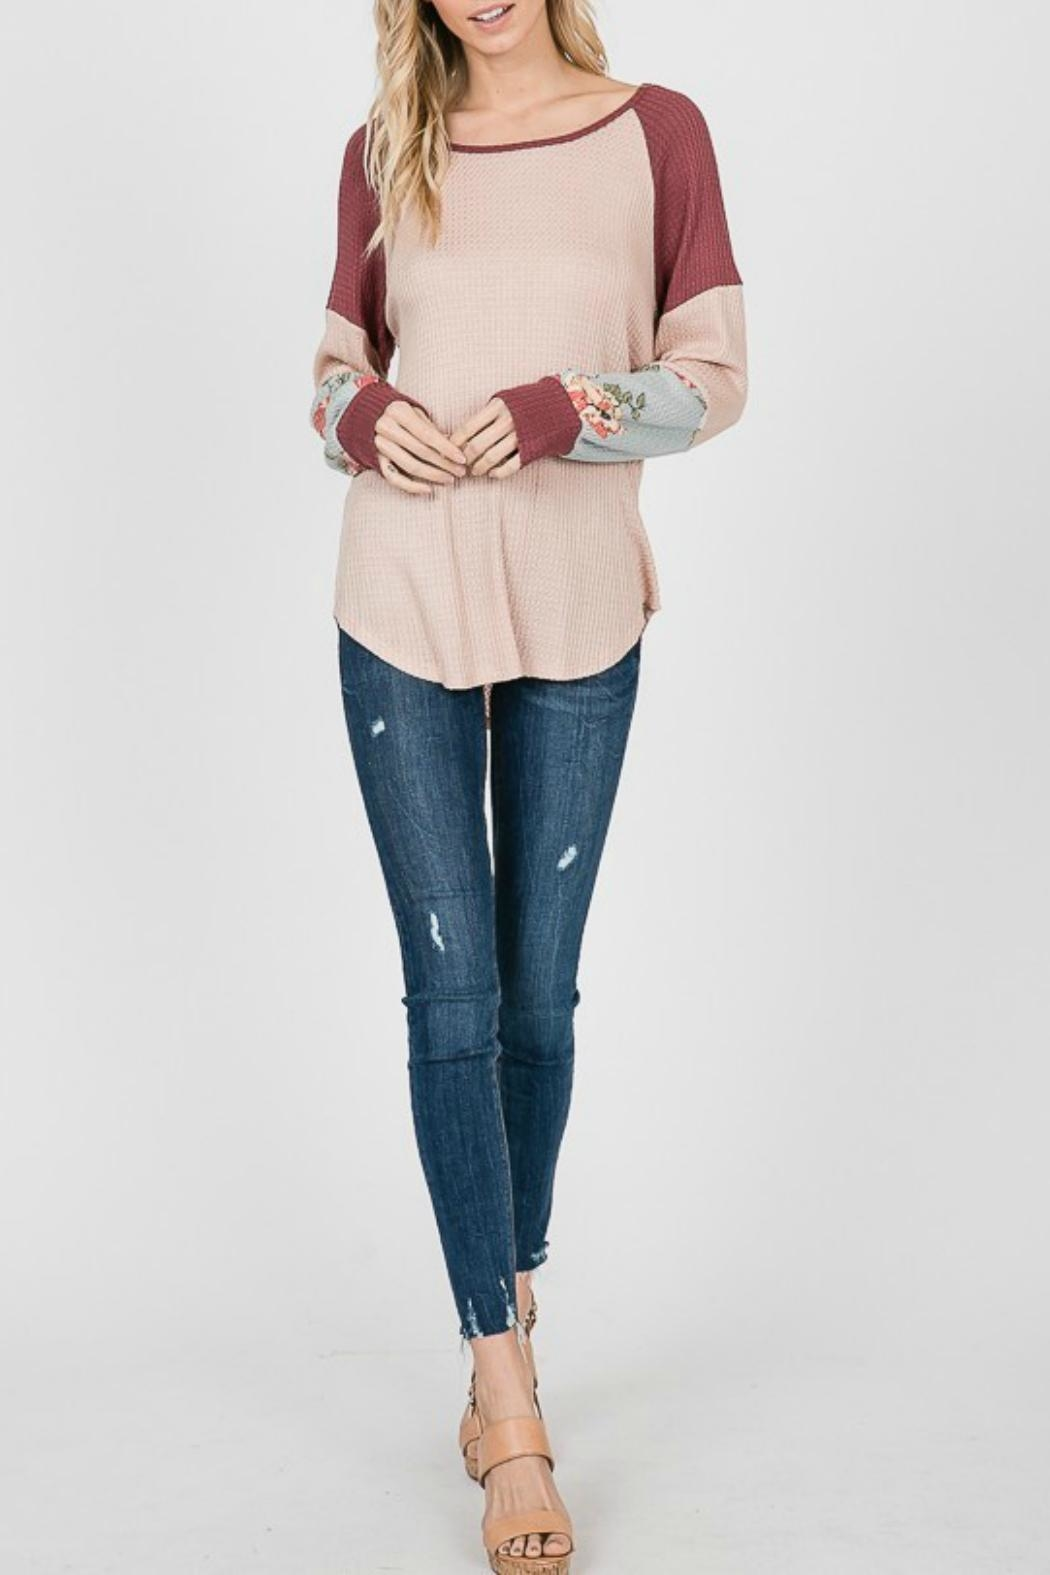 7th Ray Floral Sleeve Pullover - Main Image